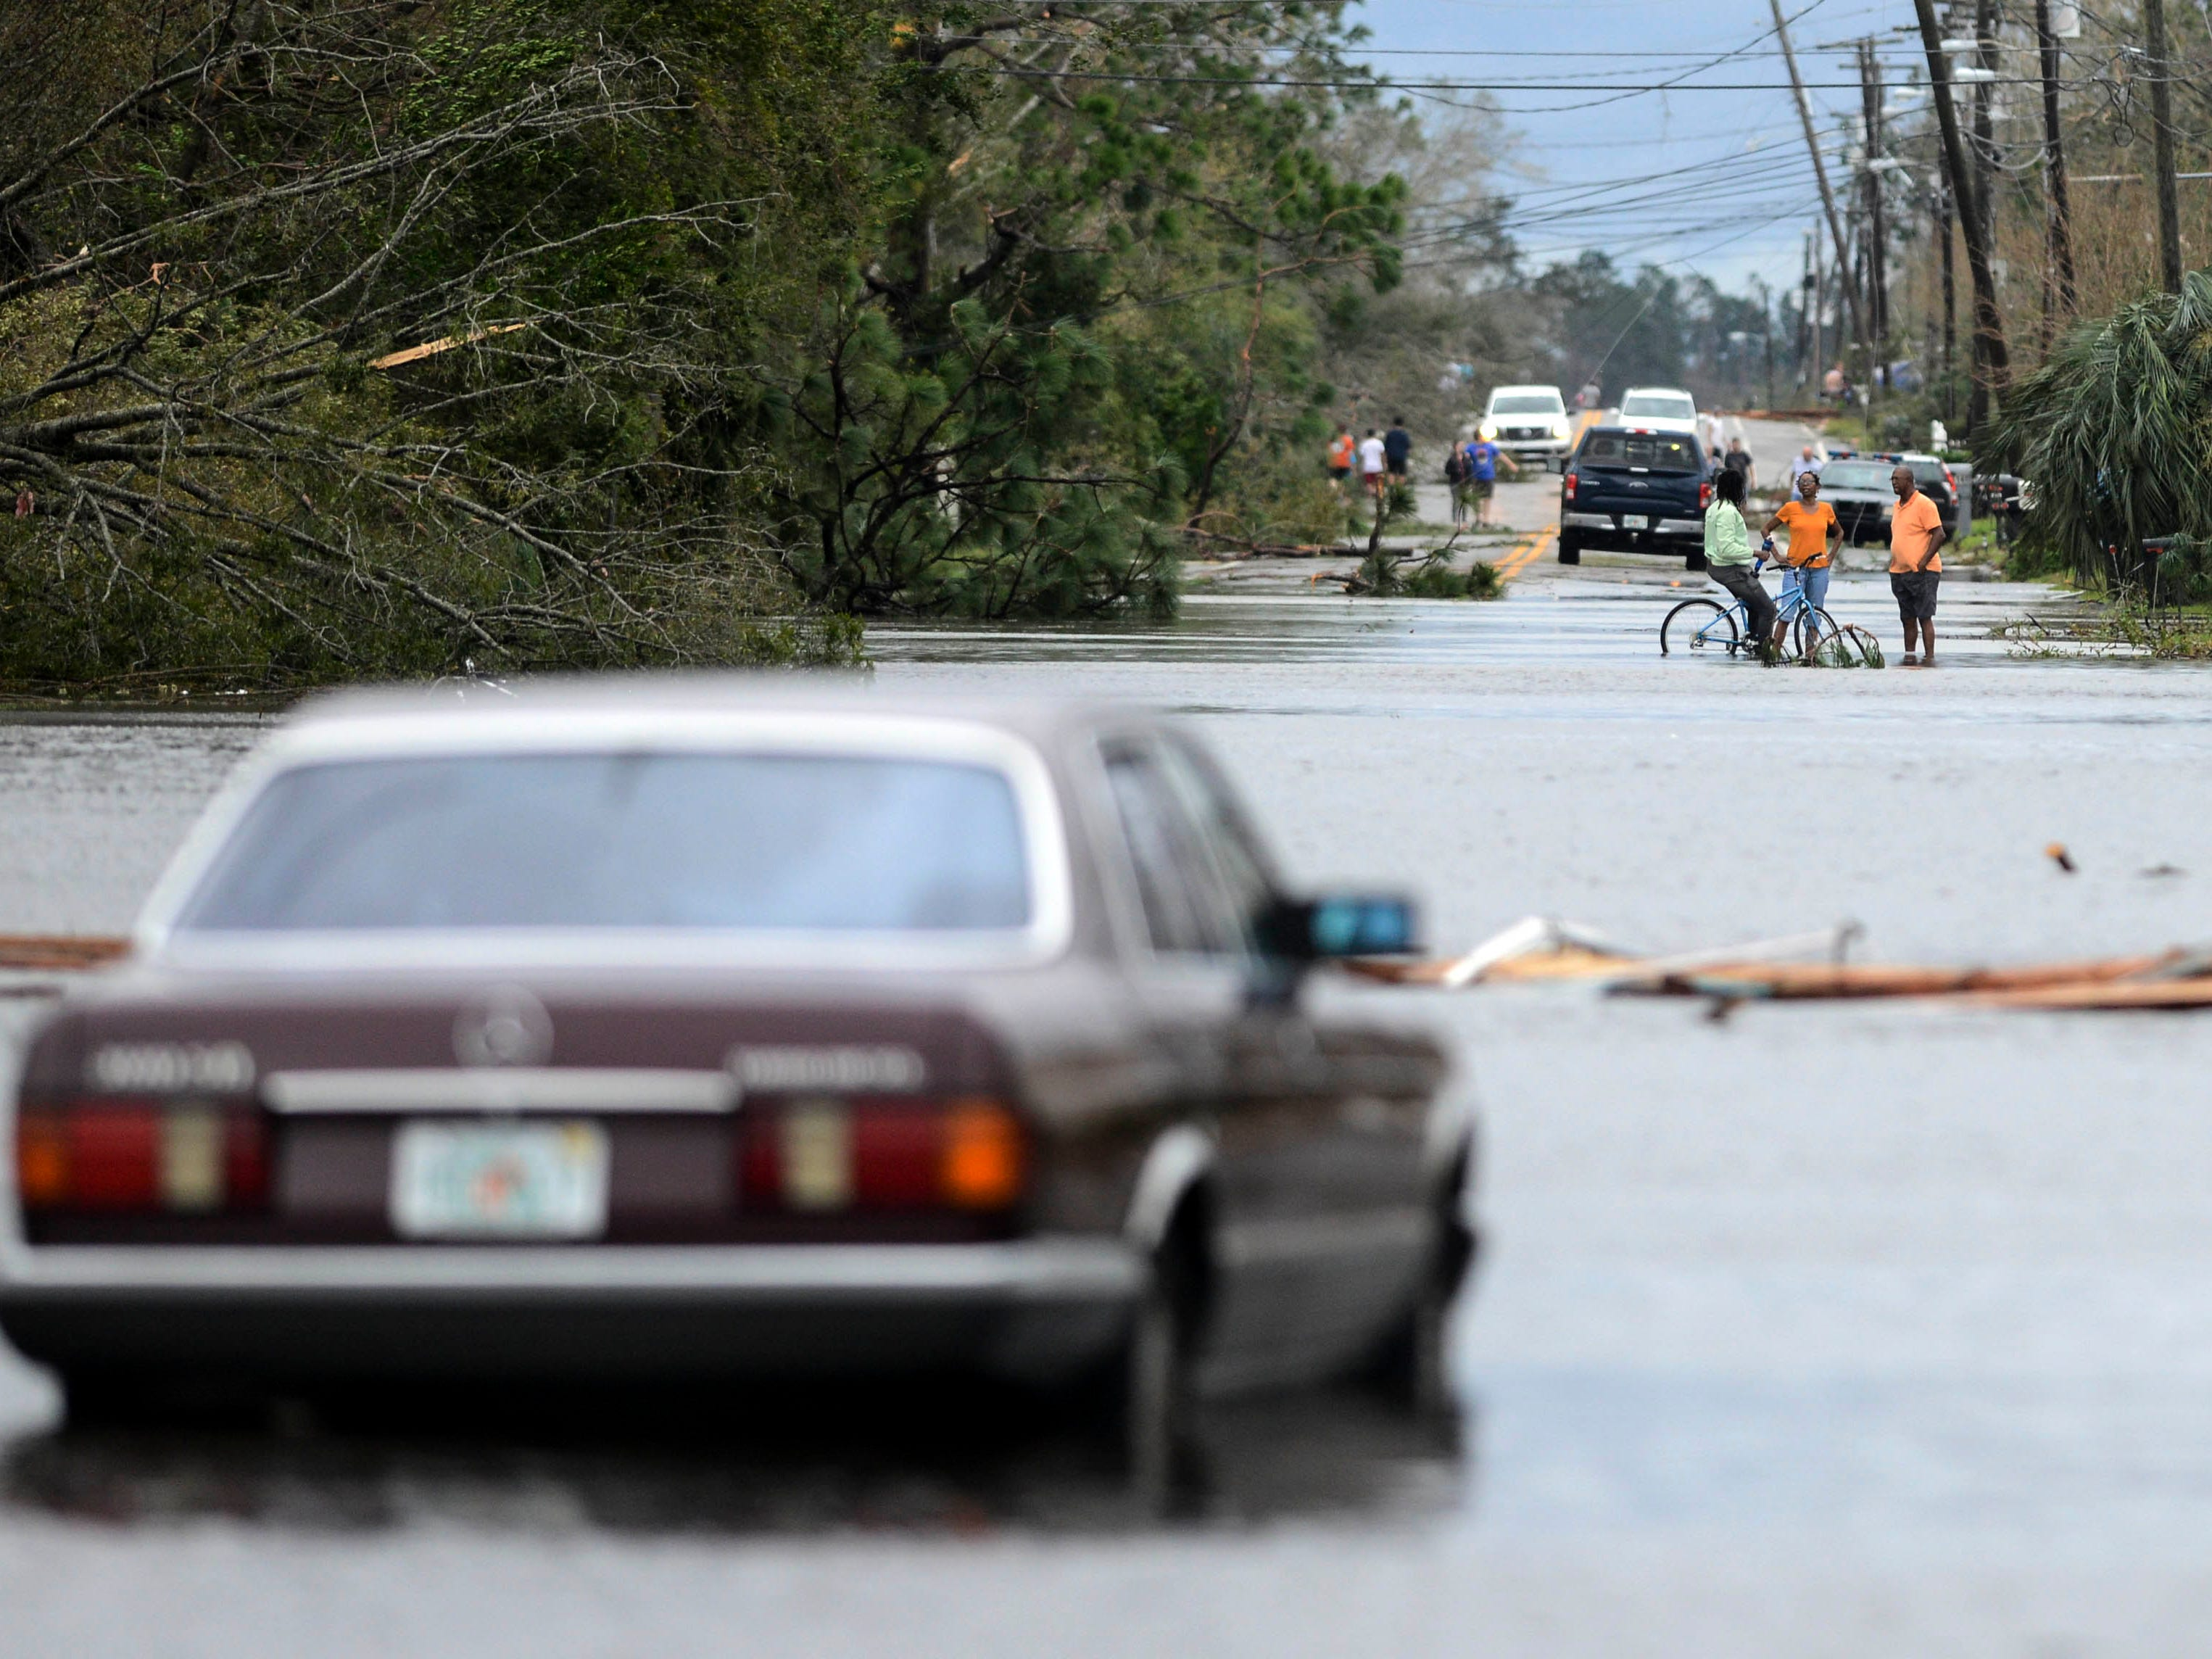 People stand in a flooded street in Panama City, Fla Oct. 11, 2018.